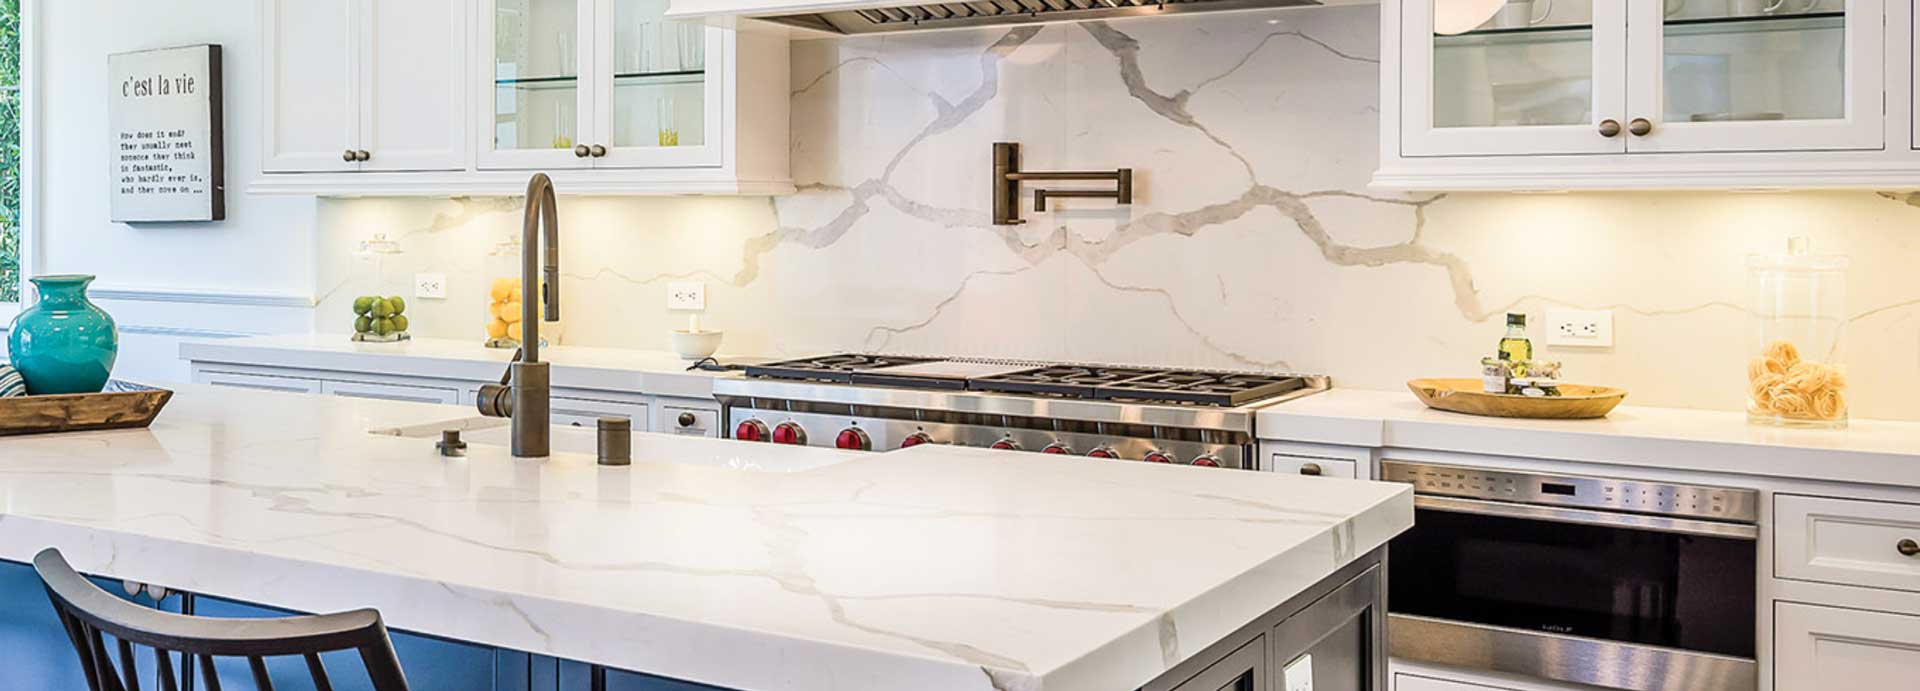 quartz kitchen countertops in white and gray